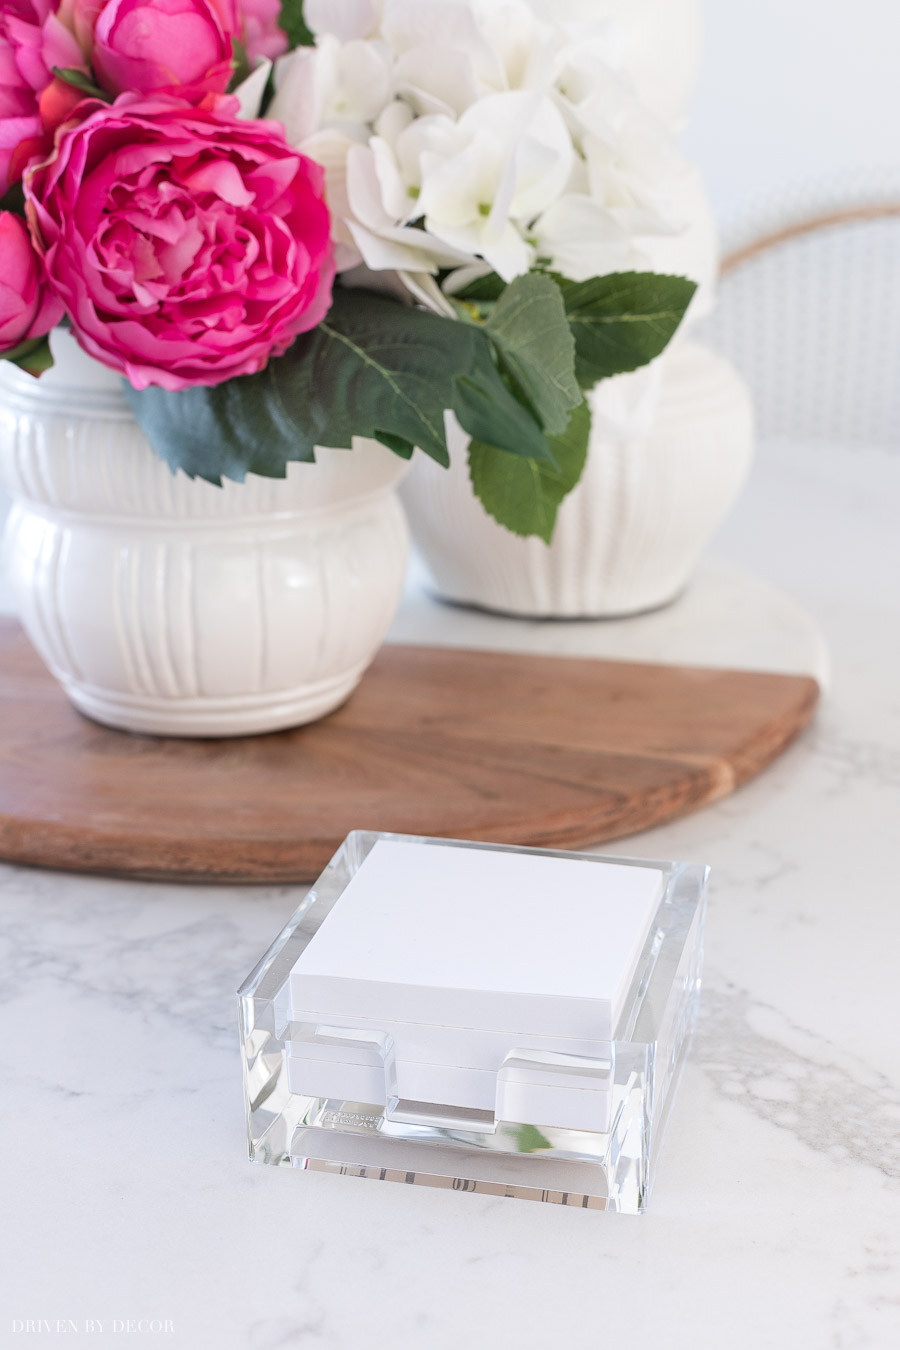 Loving this acrylic post-it holder! So chic!